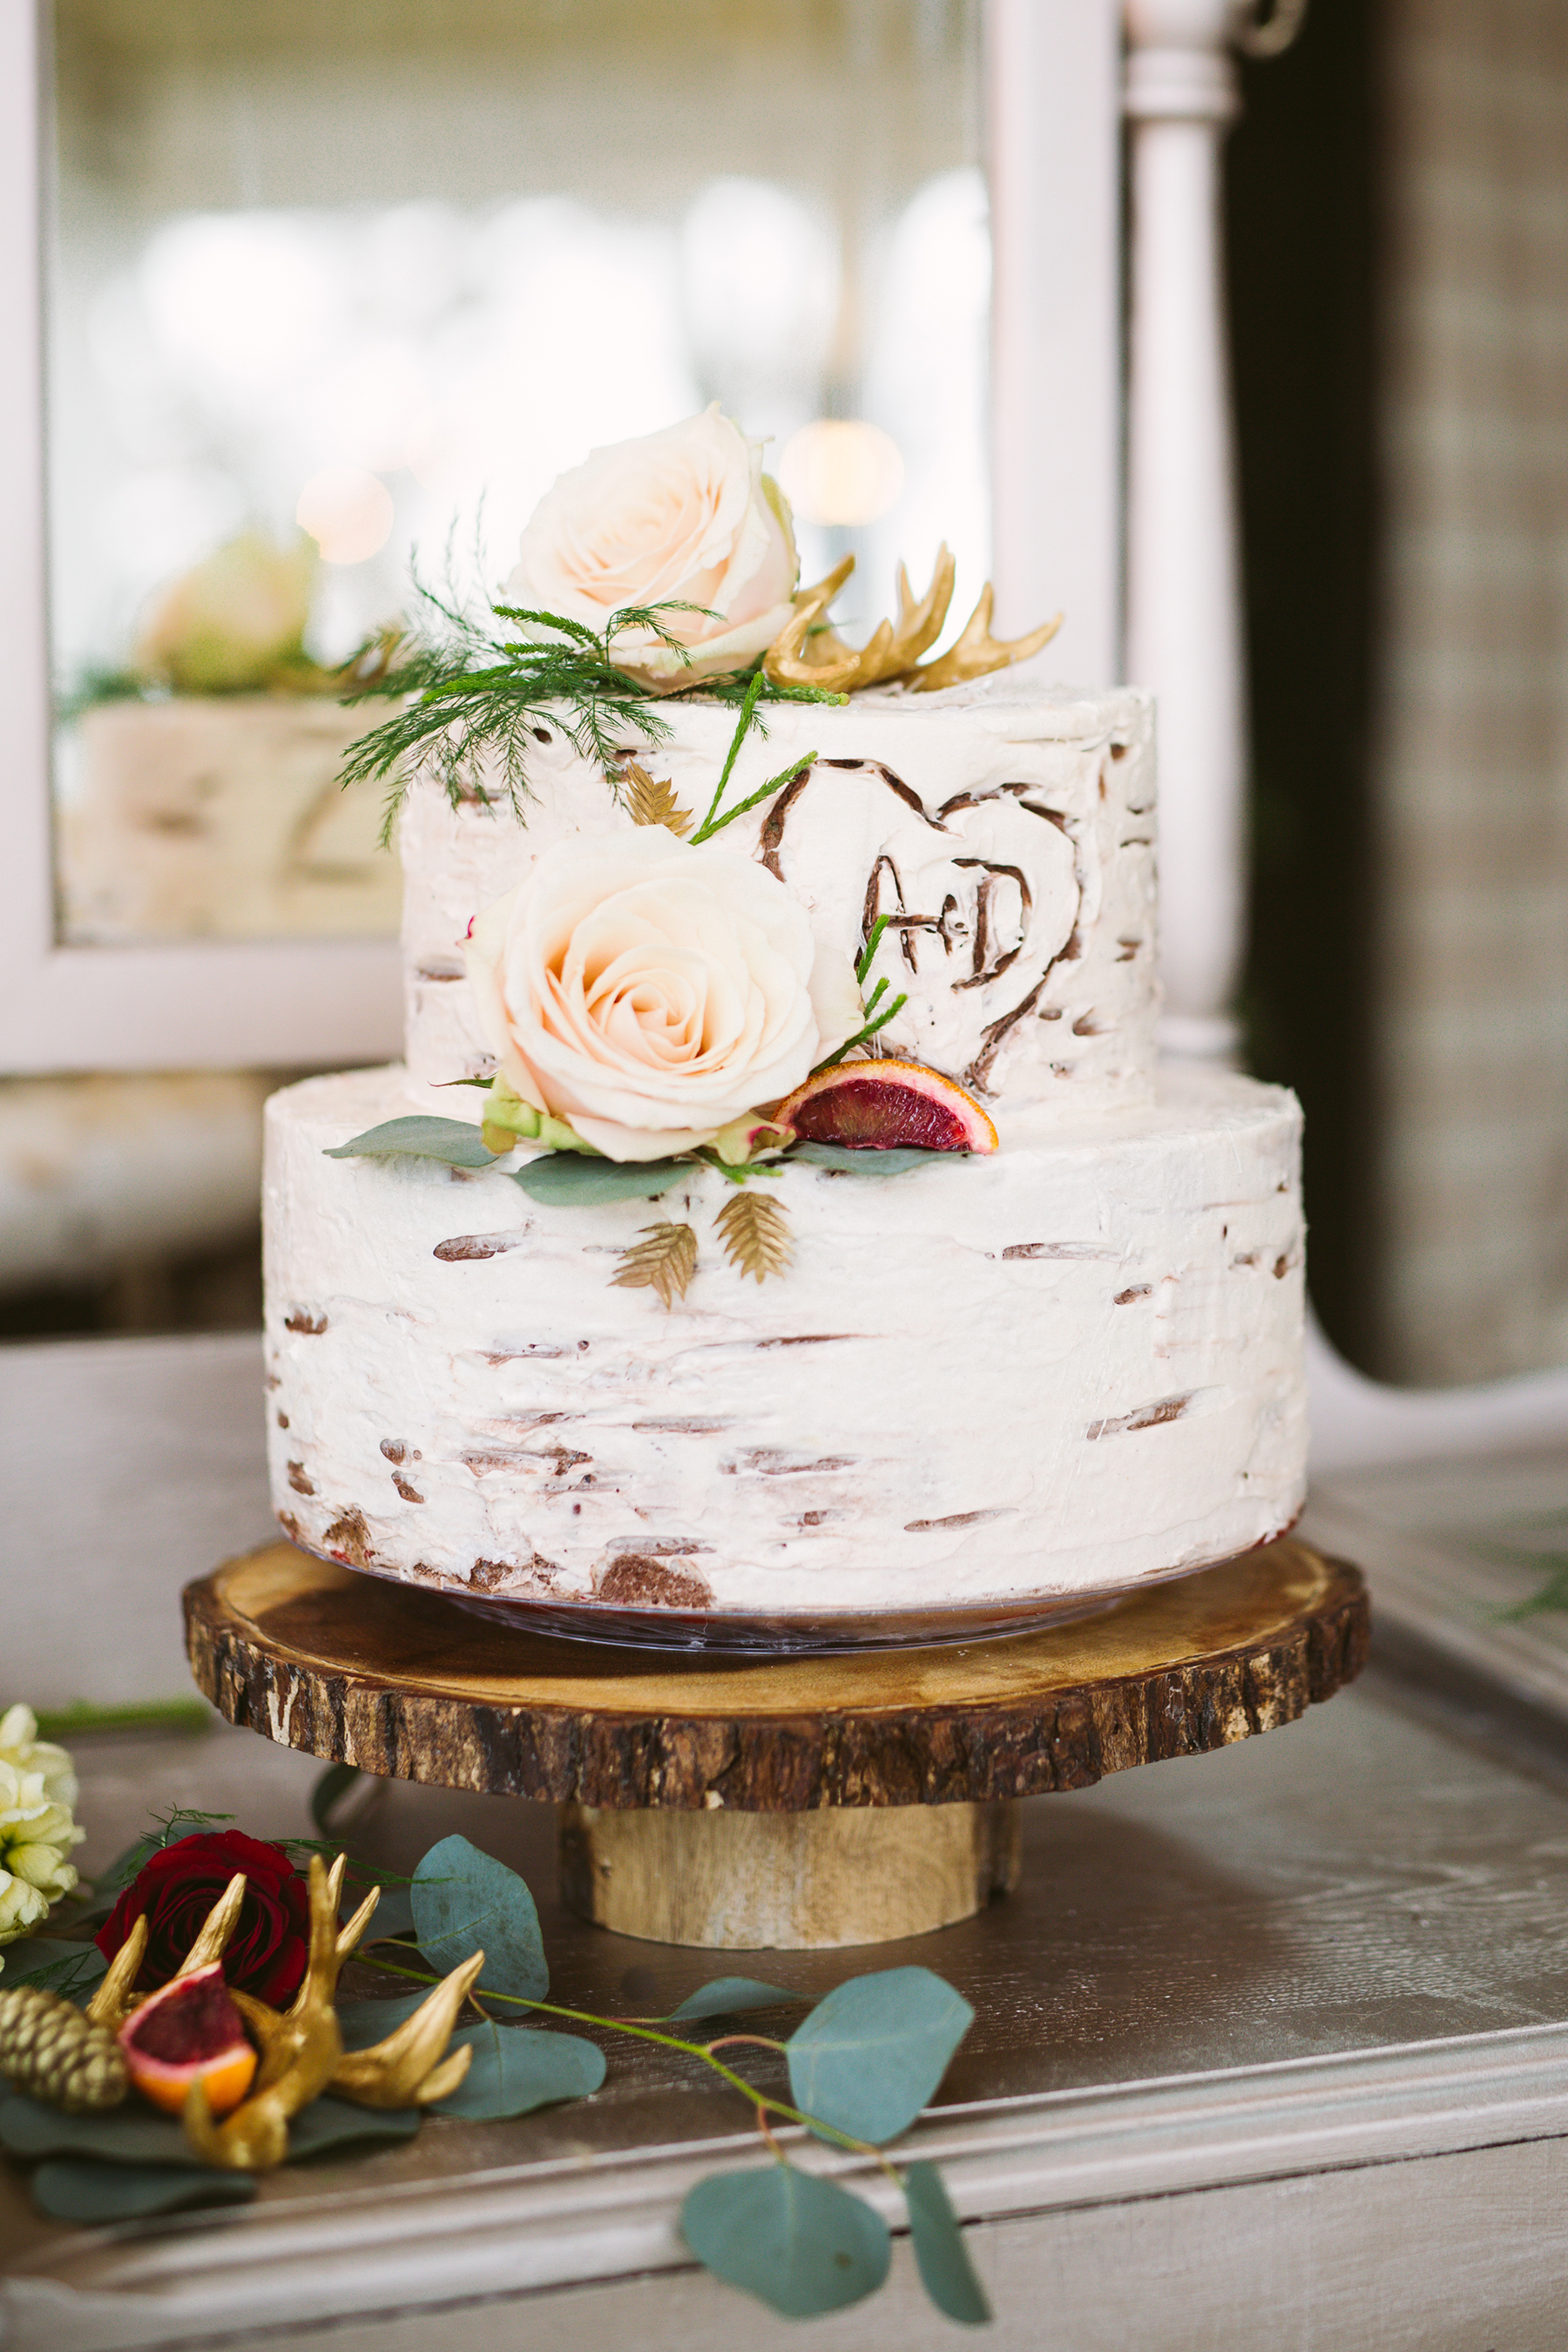 Wedding Cakes — Bespoke cakes, cupcakes and specialty